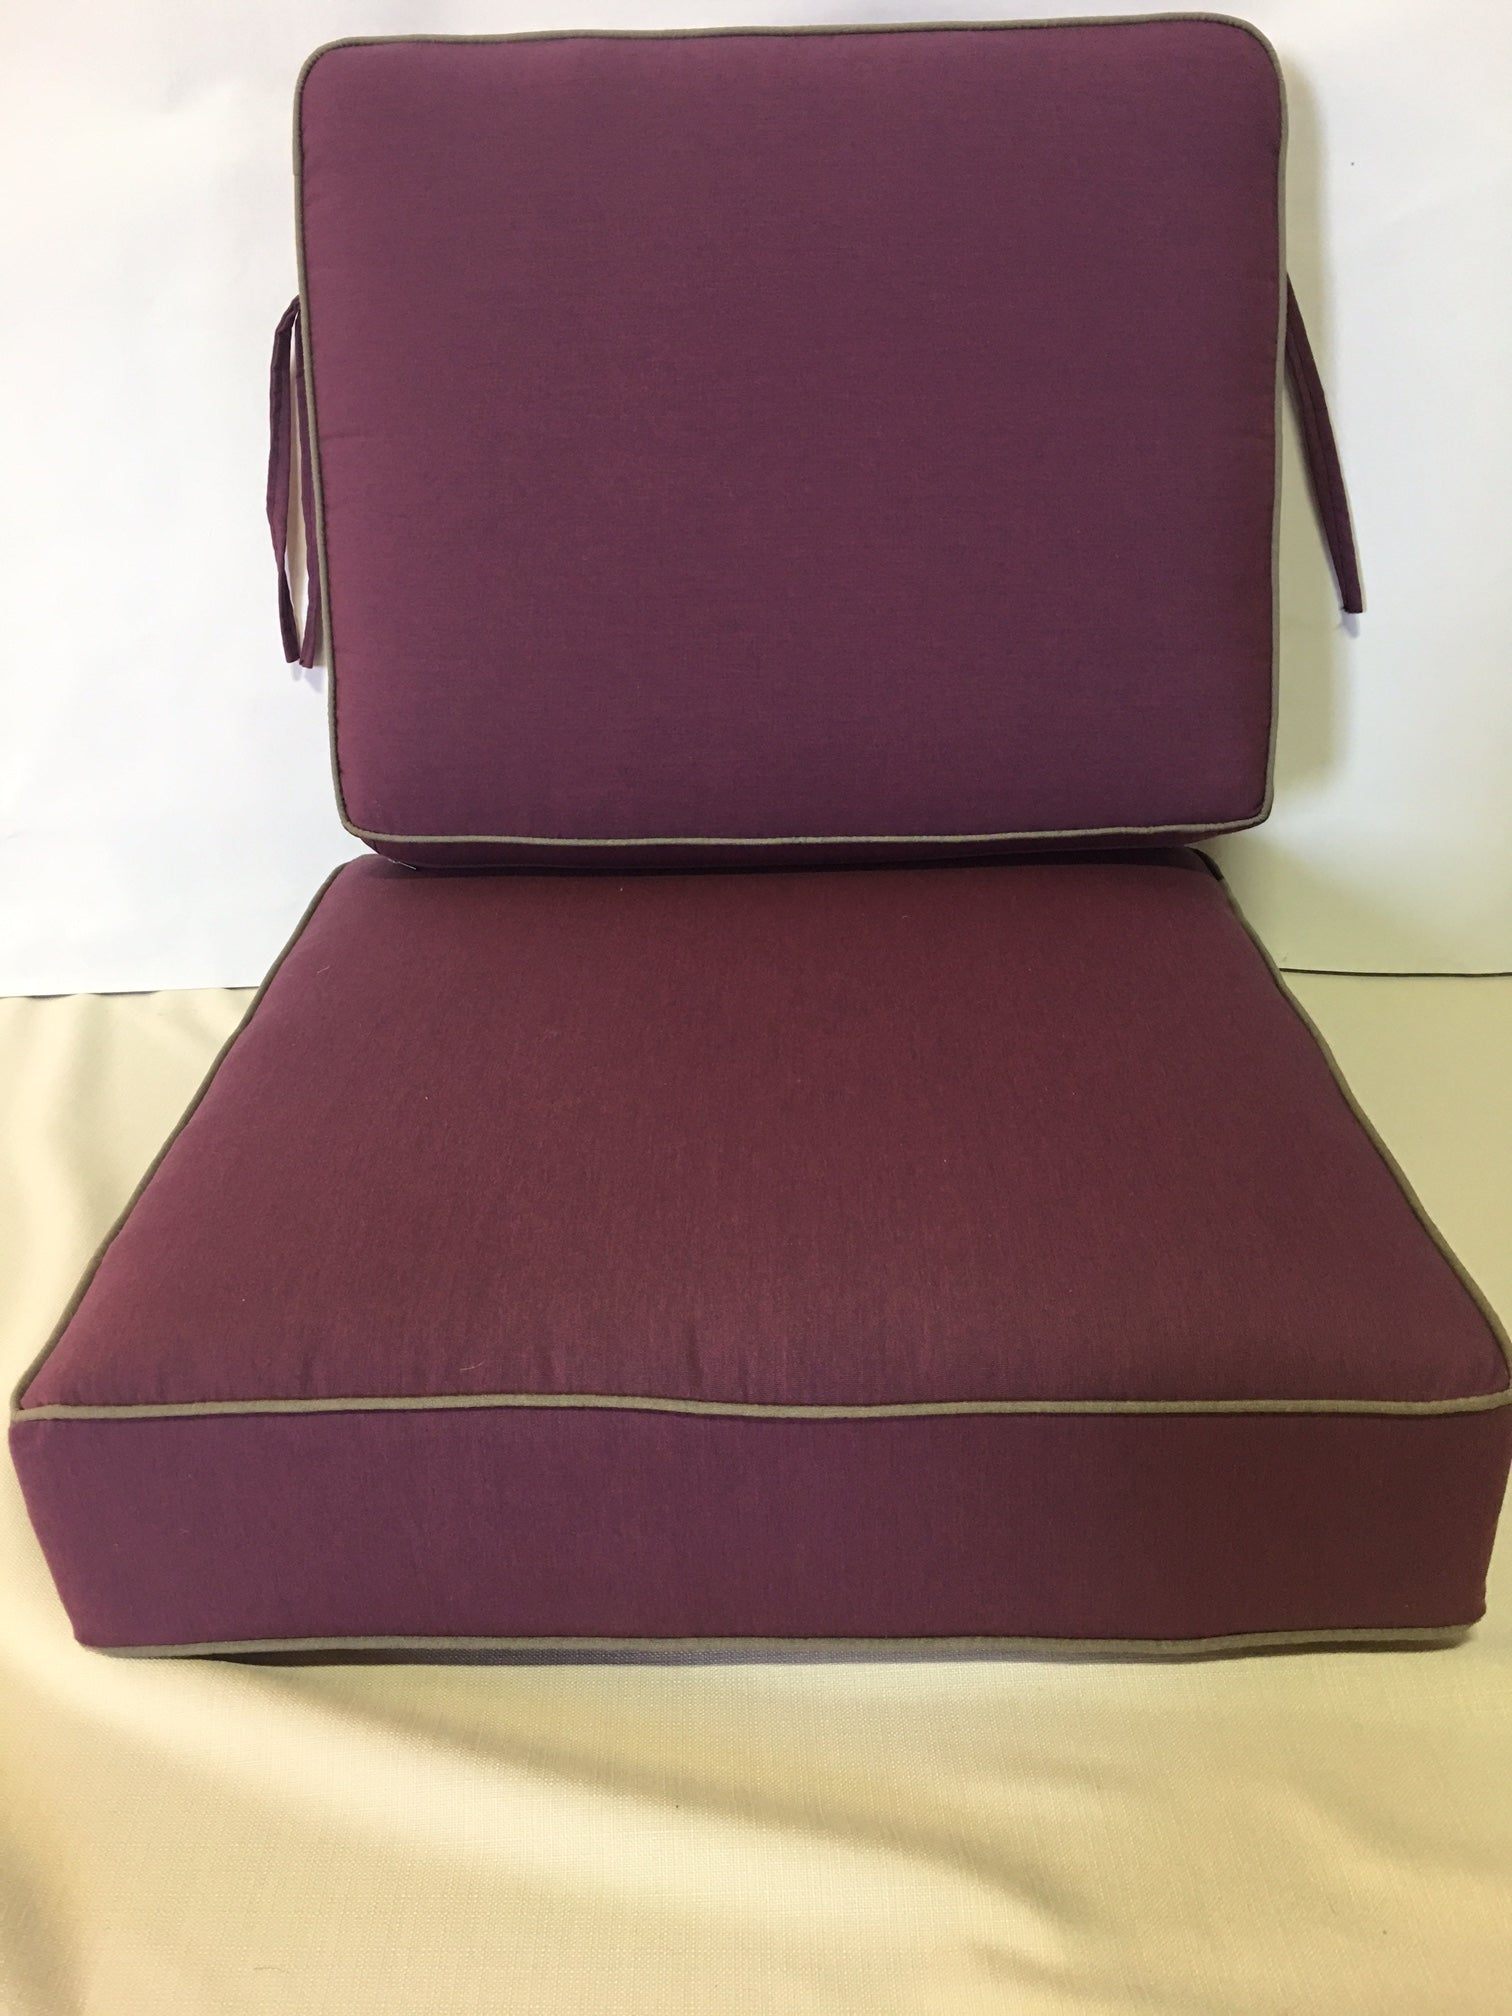 "2pc Sunbrella 6"" Cushion $209.00/$229.00, 6 sizes"